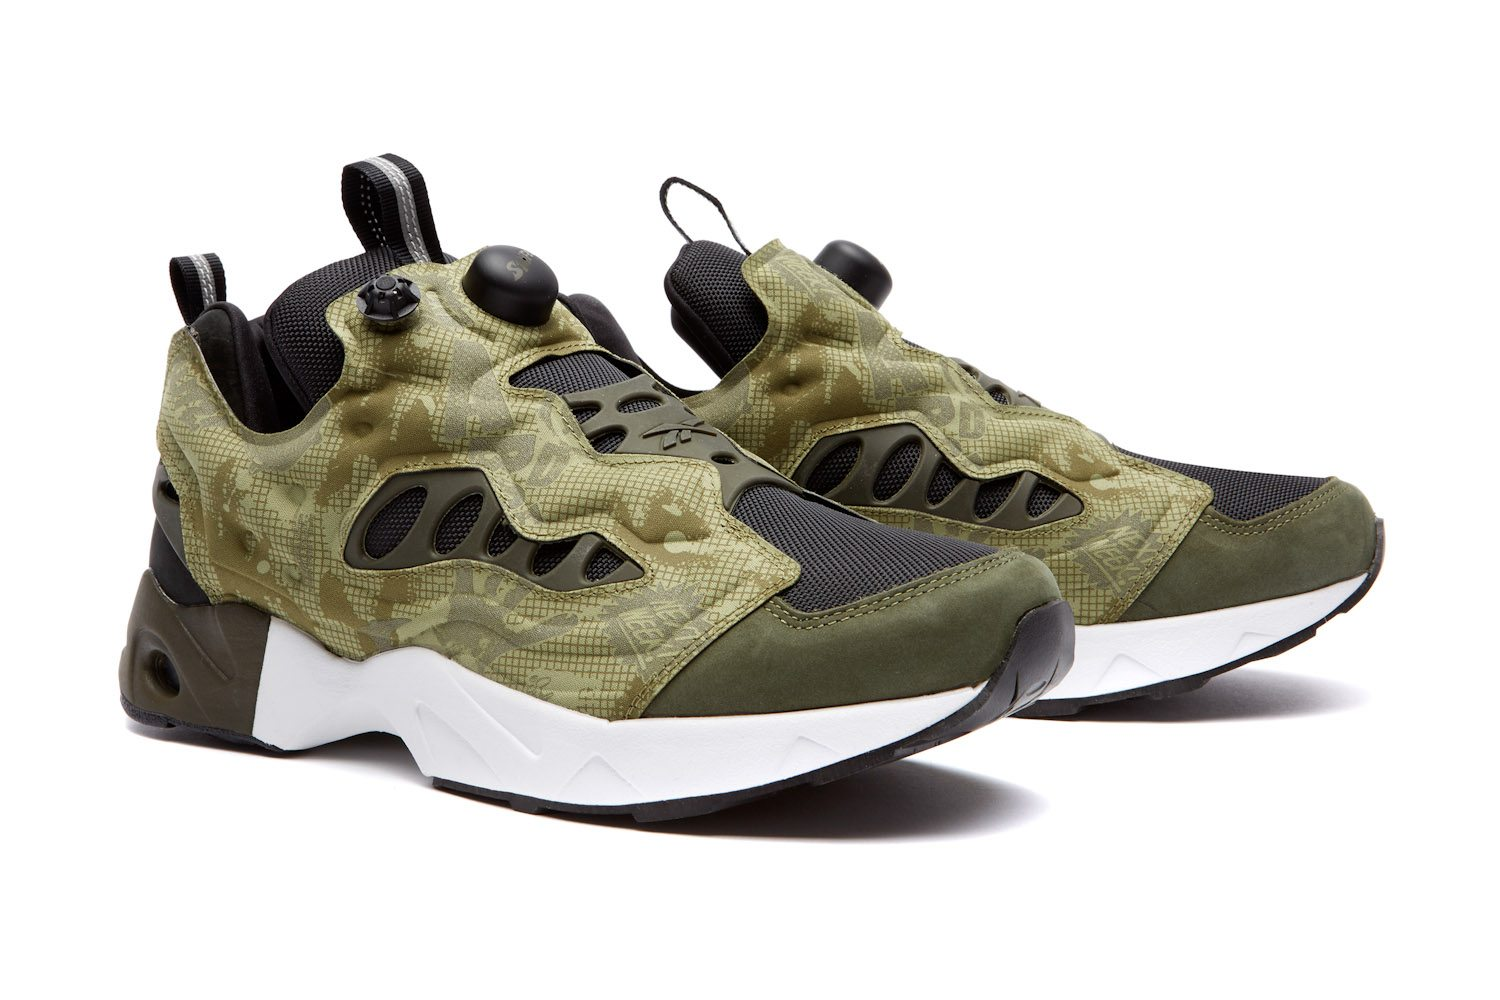 Swifty x Reebok Classic Instapump Fury Road Night Camo 5